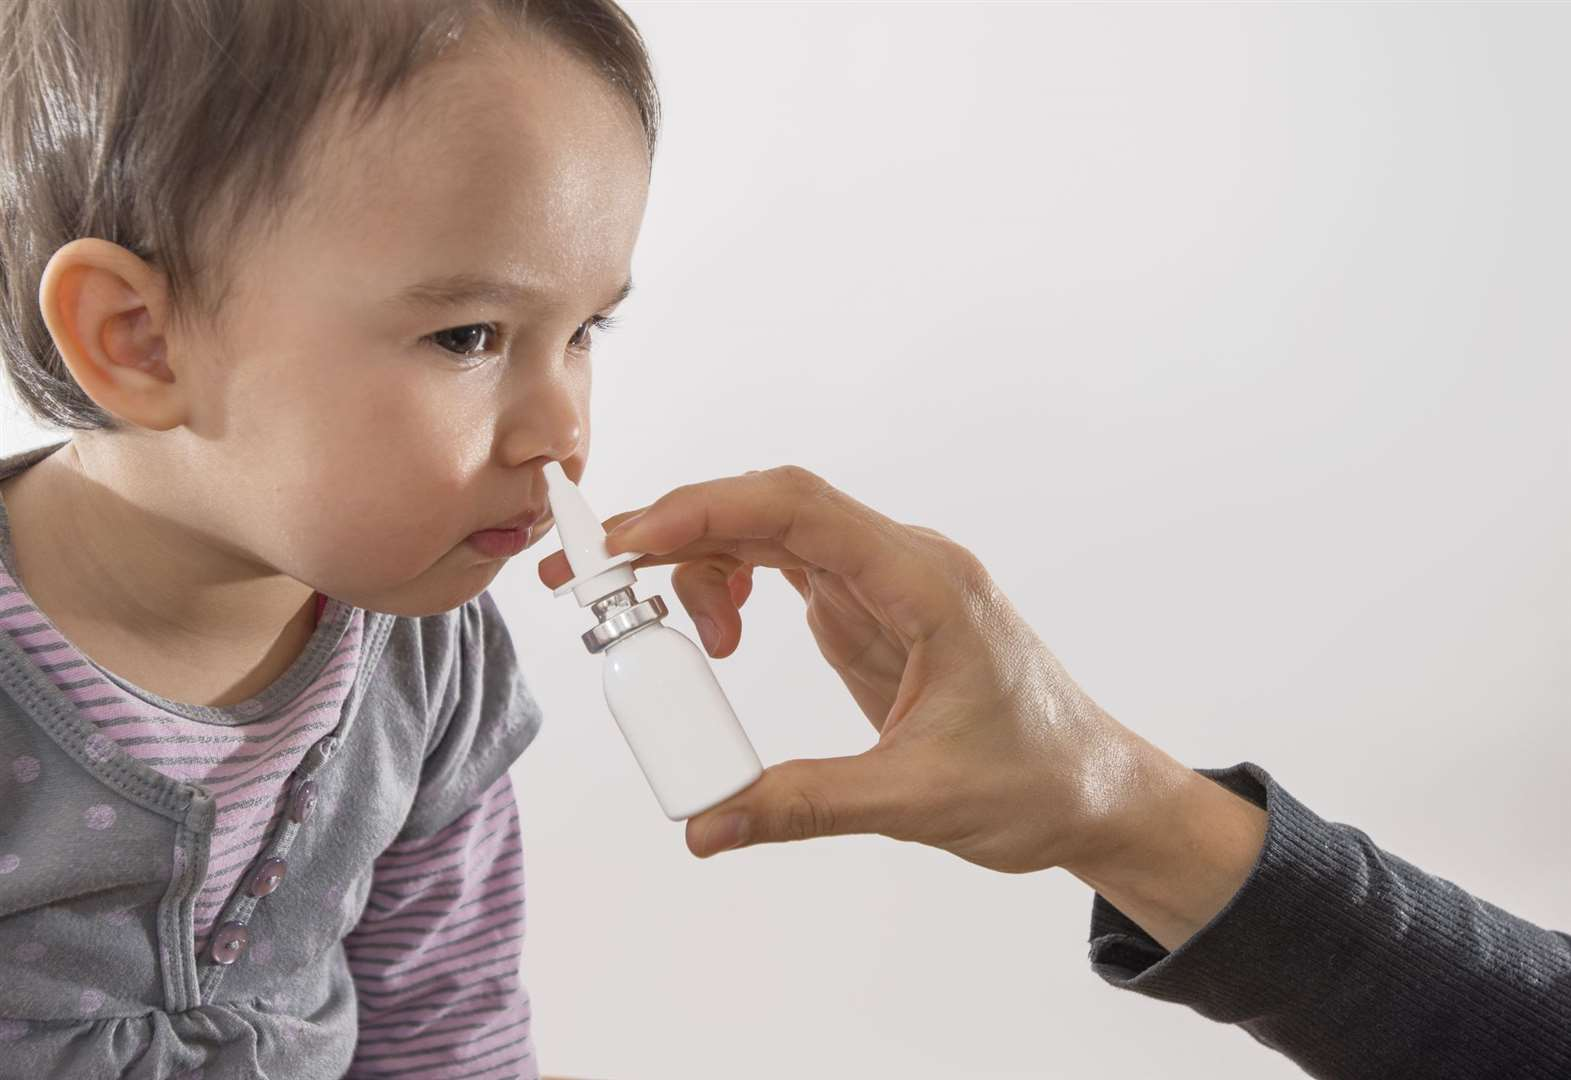 Was your child immunised against flu?